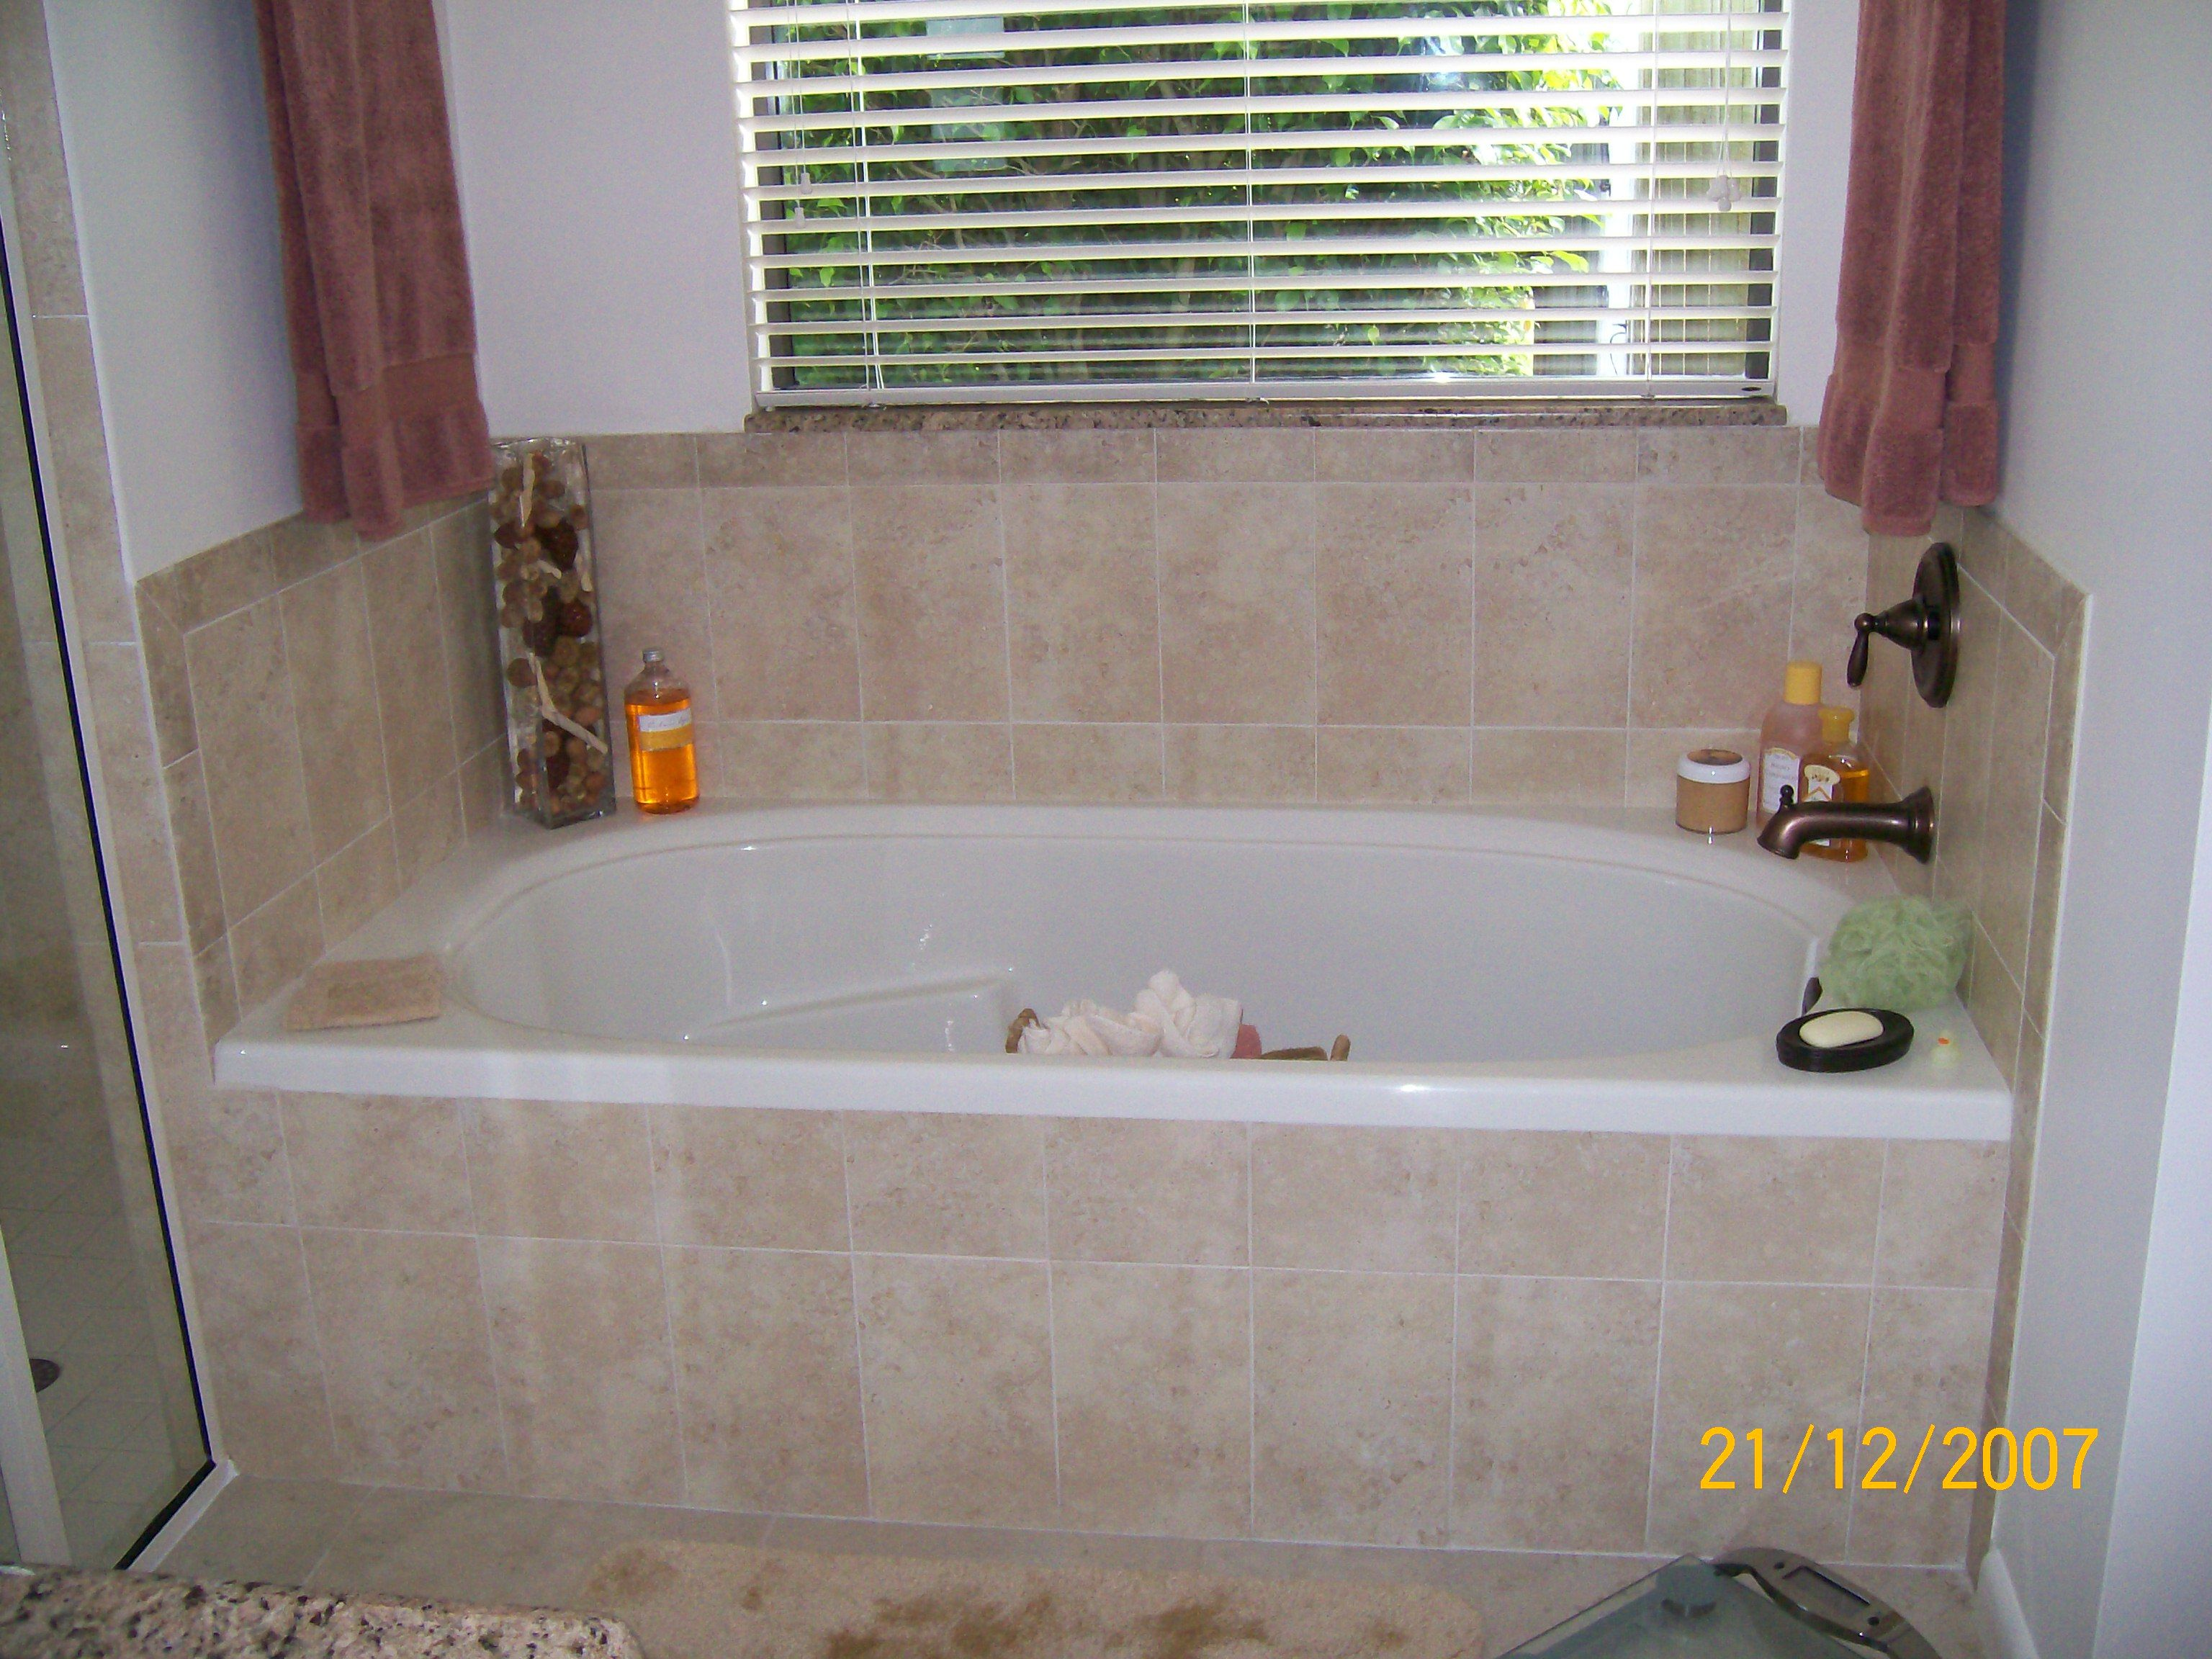 Acrylic Soaking Tub with Ceramic Tile Backsplash & Tub Skirt